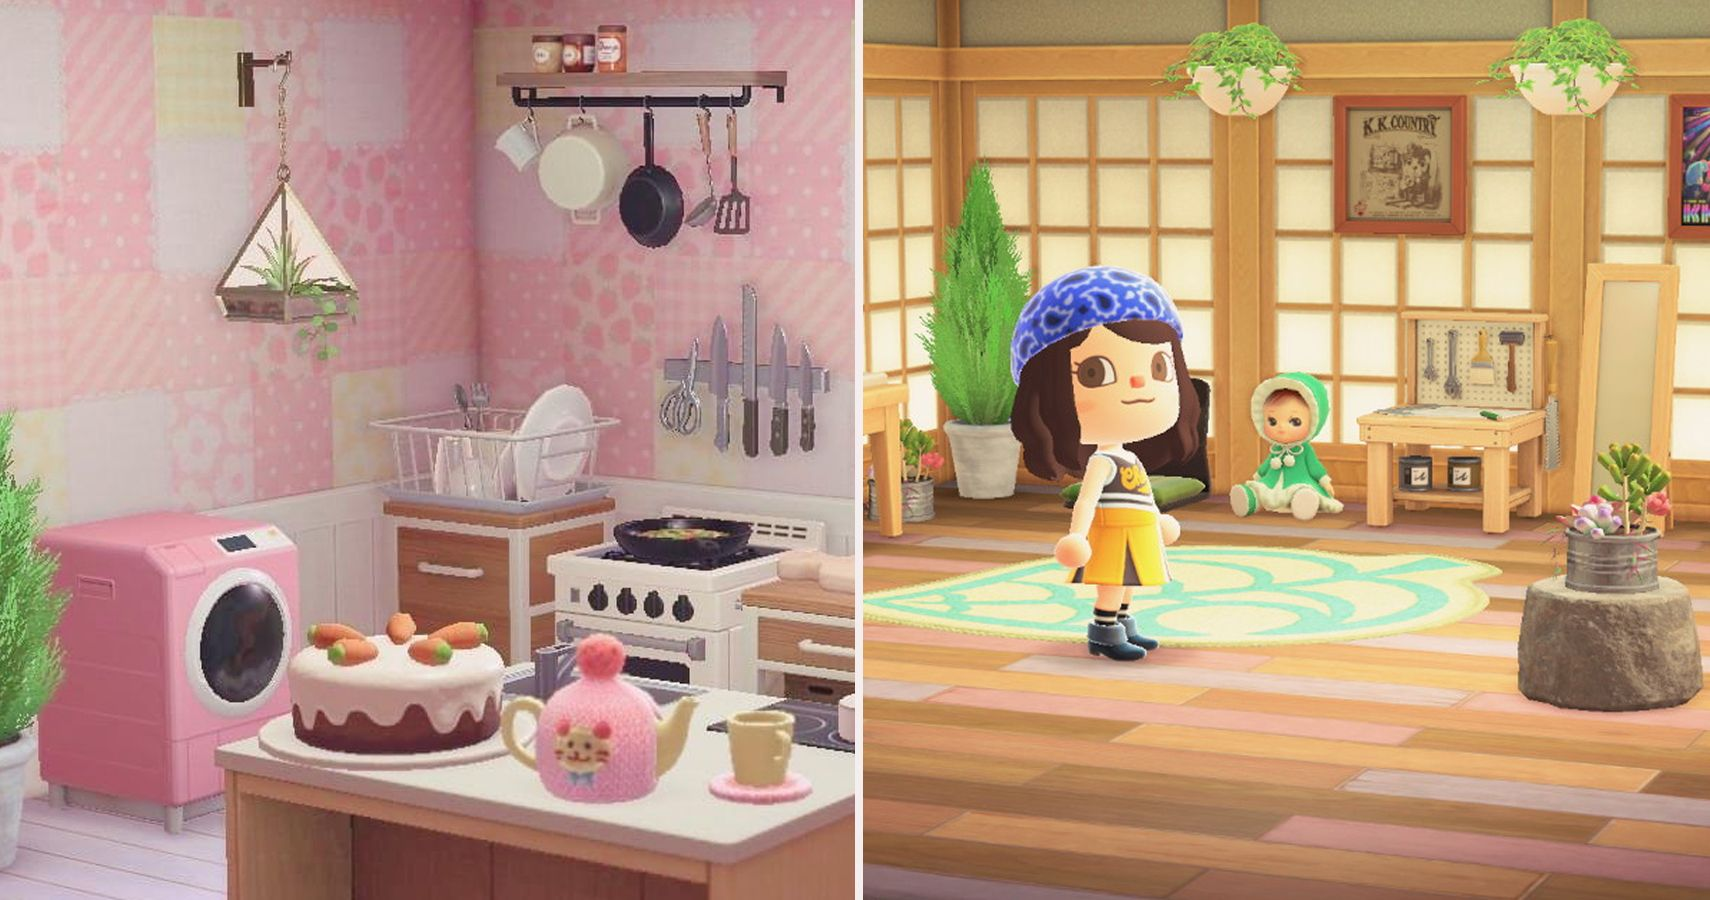 15 Best Wallpapers In Animal Crossing New Horizons Thegamer